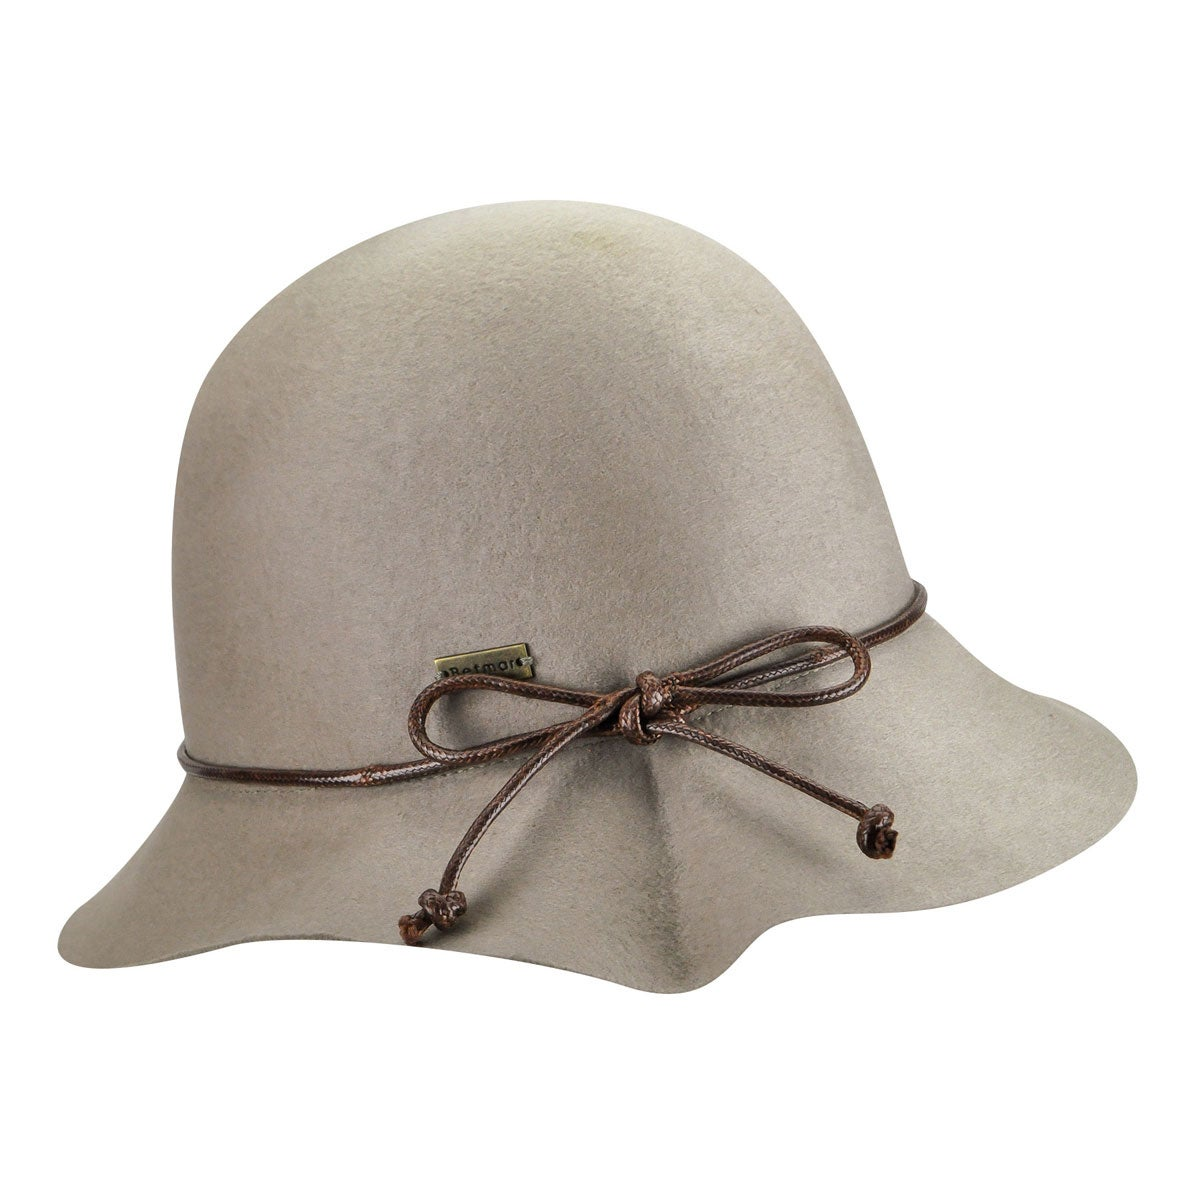 1920s Hat Styles for Women- History Beyond the Cloche Hat Evelyn LiteFeltreg Cloche $85.00 AT vintagedancer.com